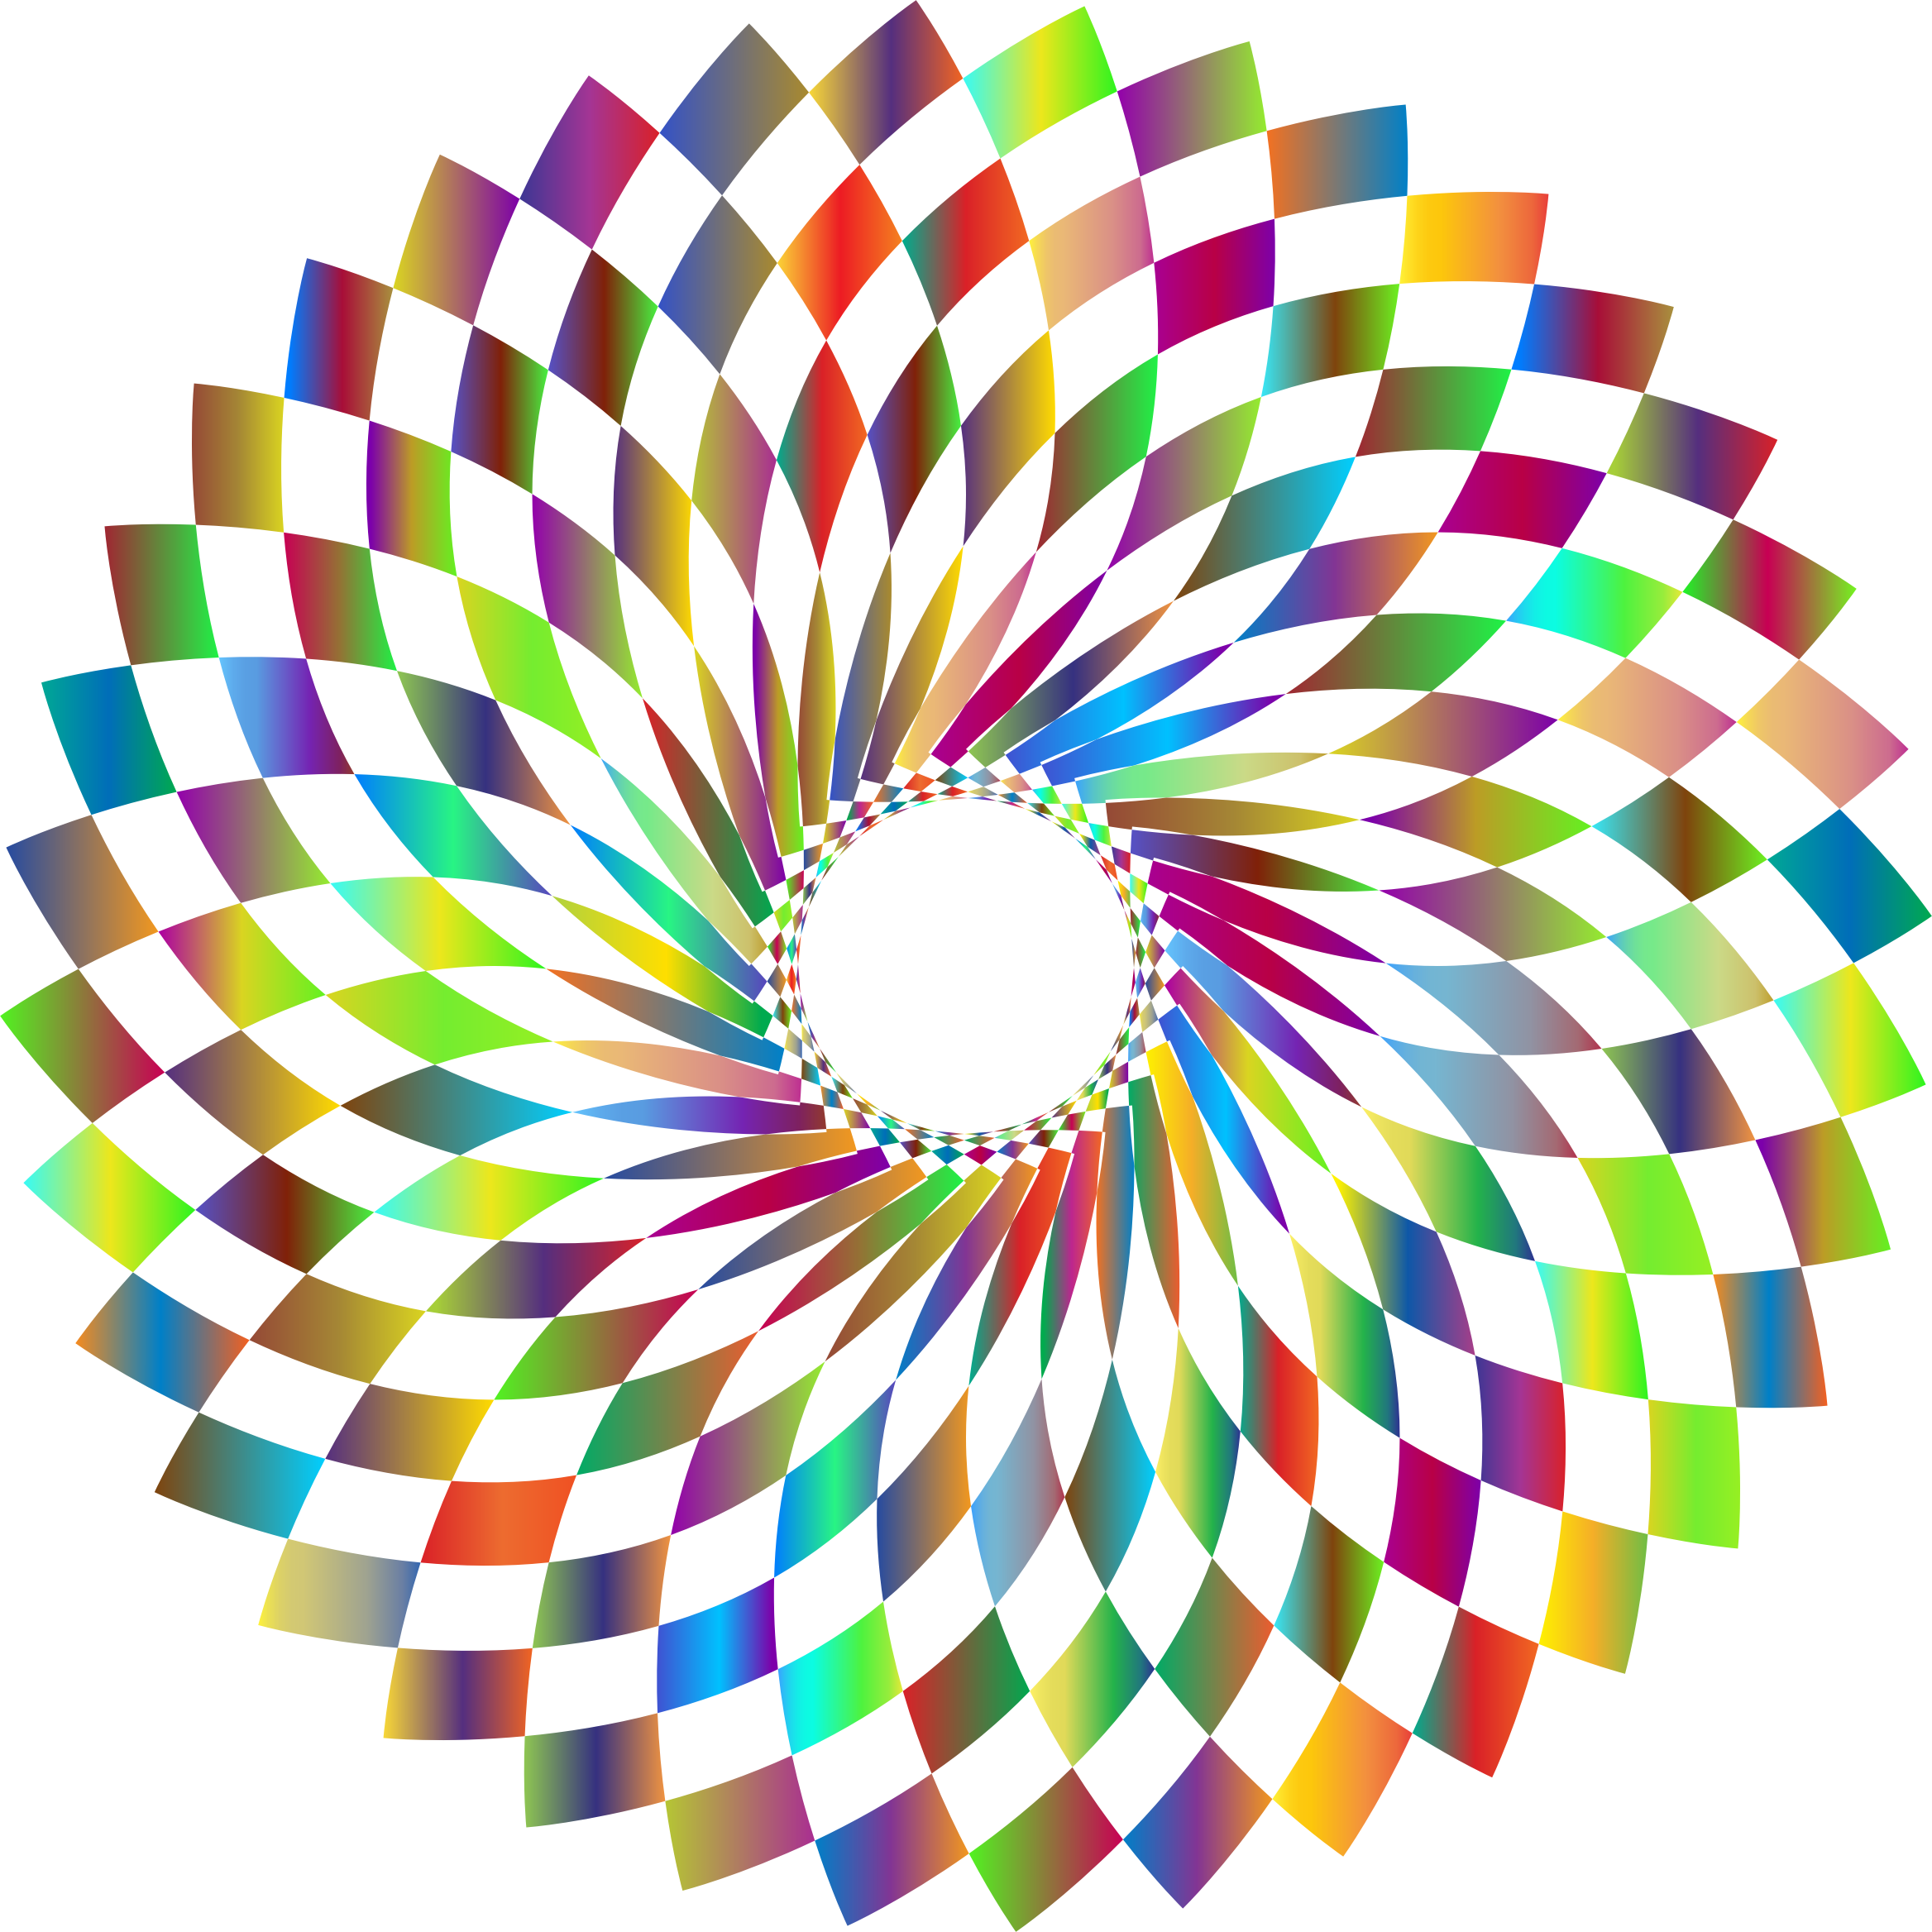 Checkered drawing vortex. Prismatic no background icons